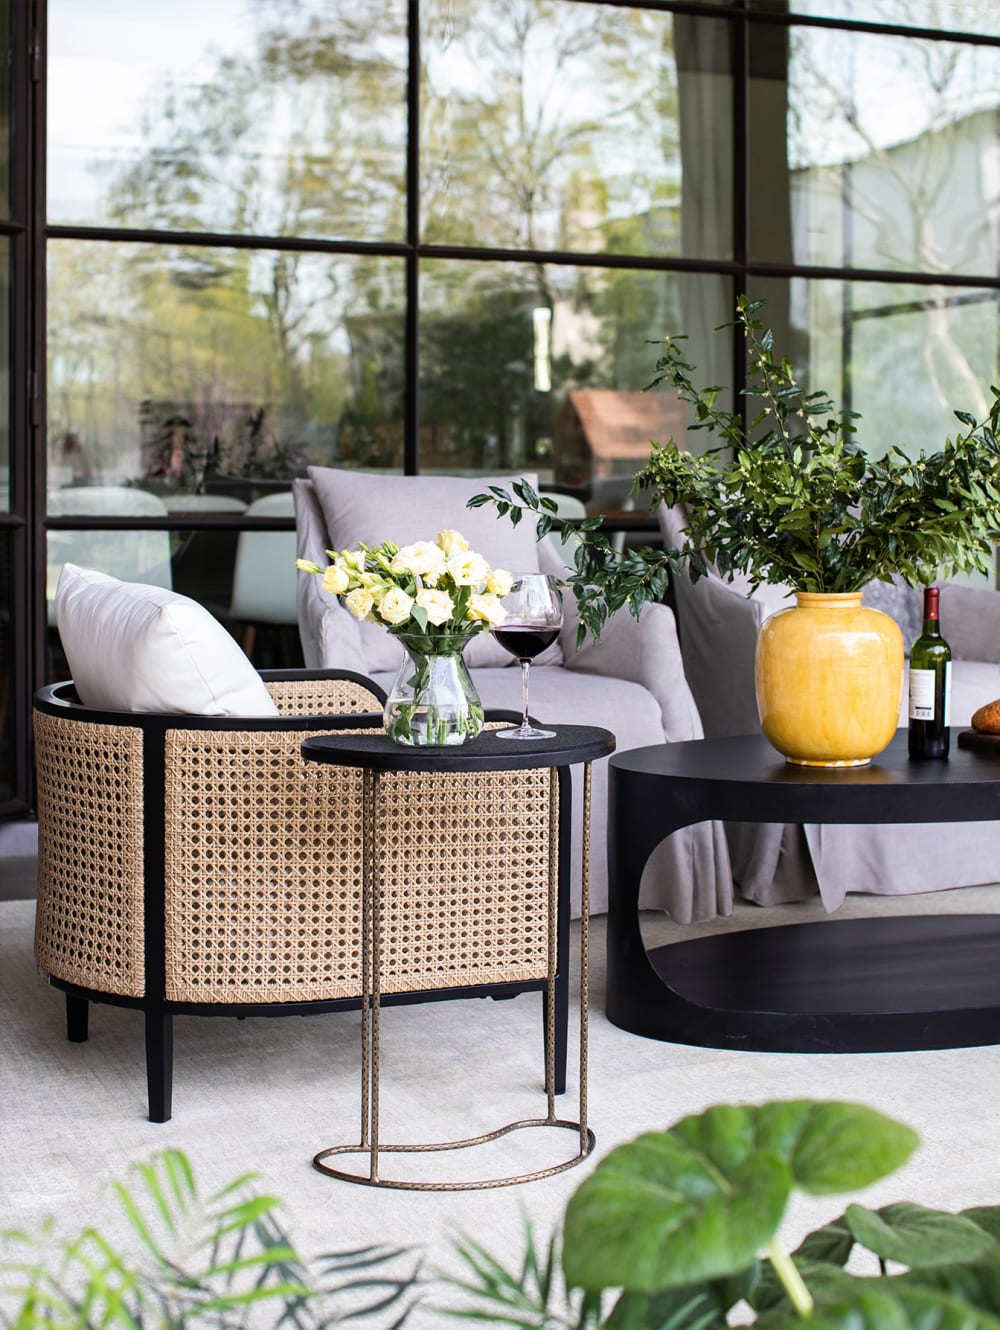 """Outdoor seating area with a rattan armchair.<span class=""""sr-only""""> (opened in a new window/tab)</span>"""